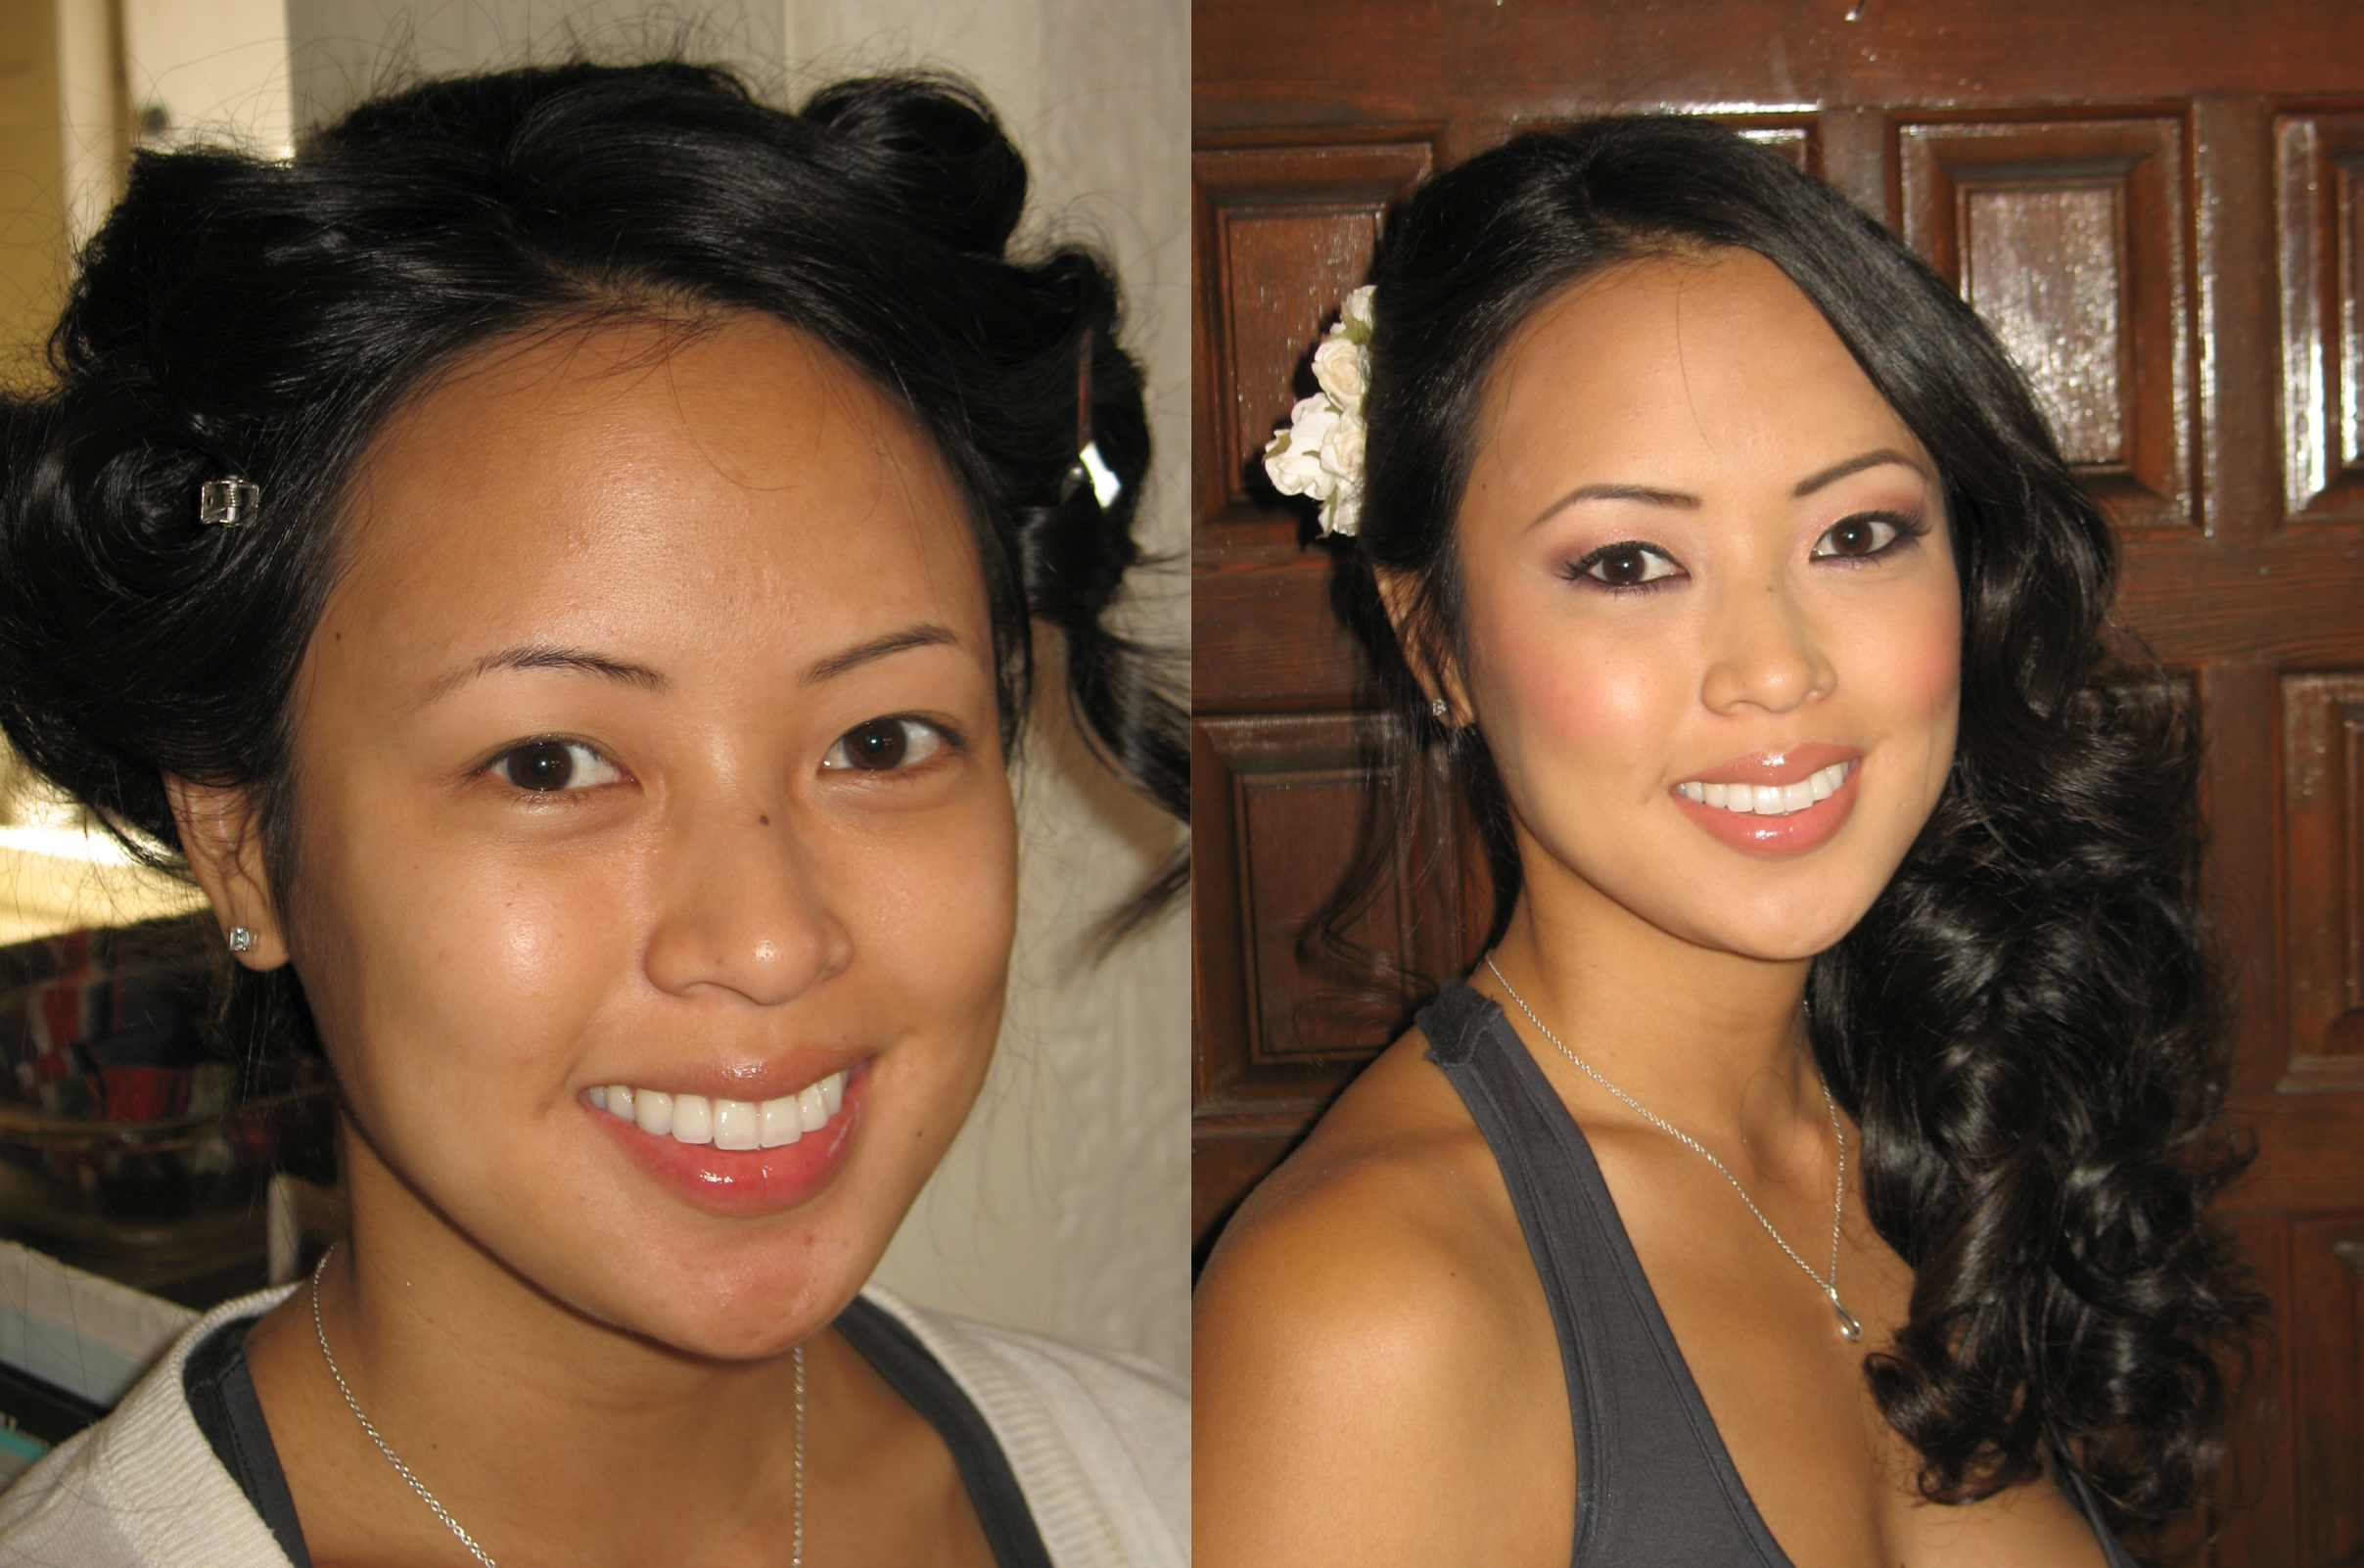 before-after-2415-2.jpg